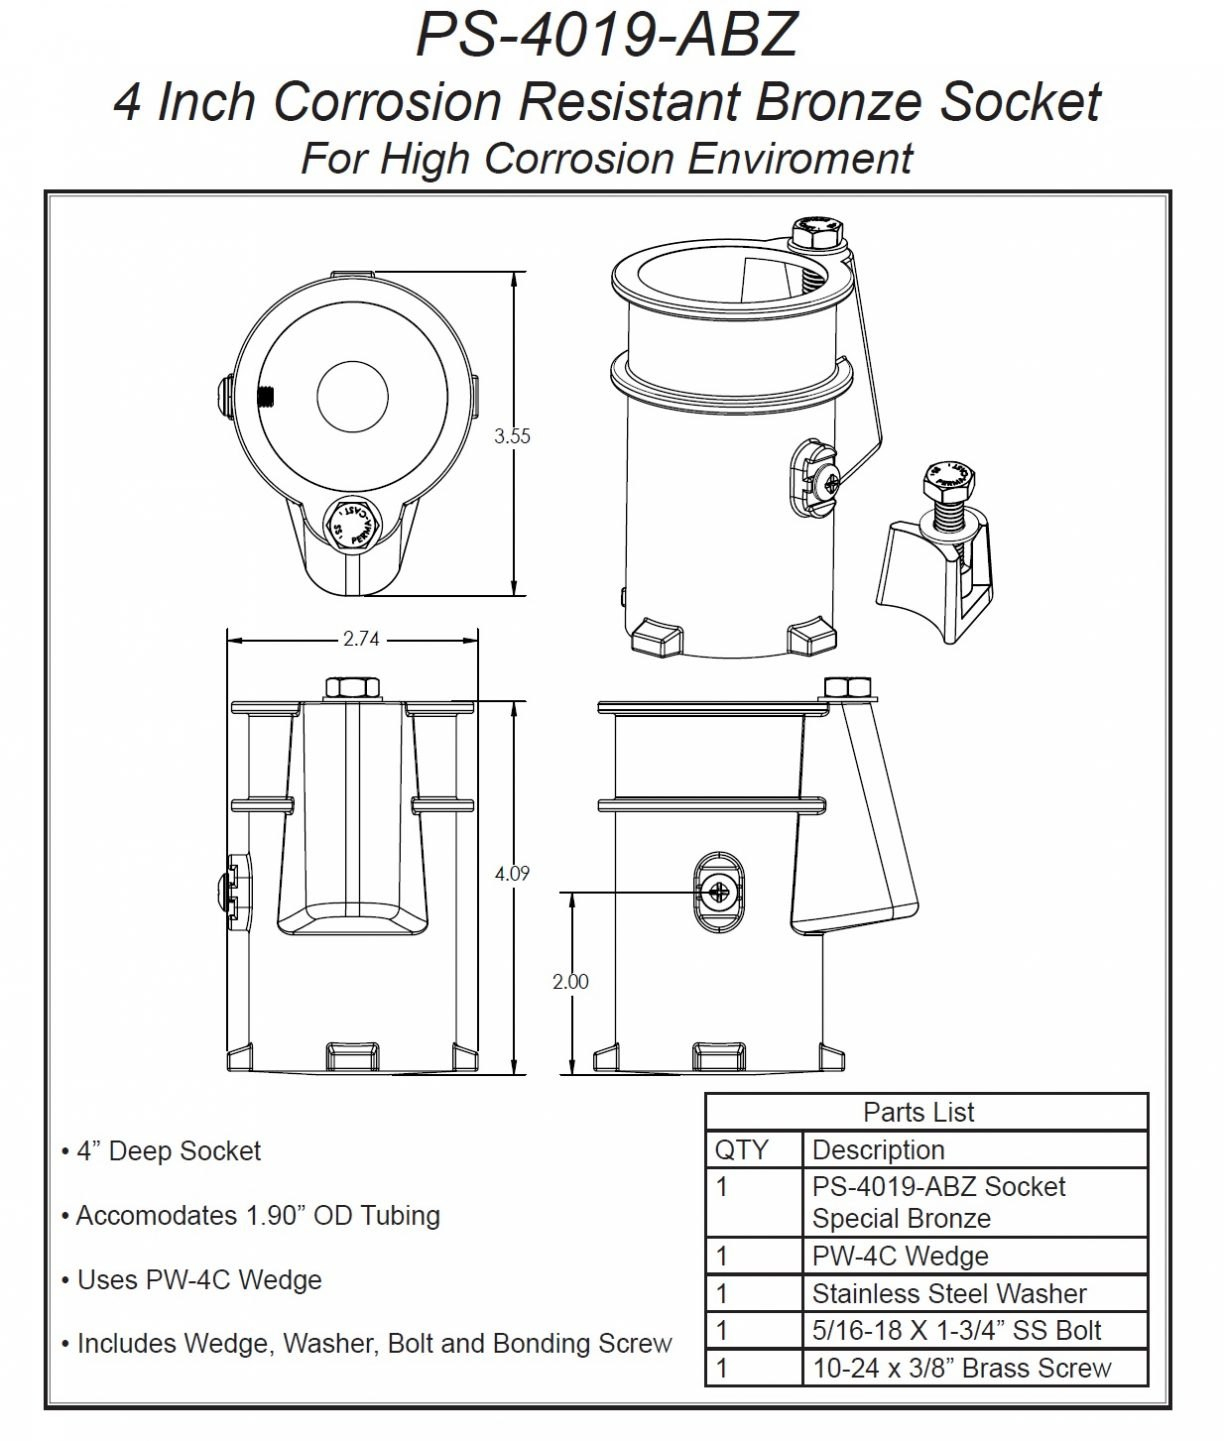 Gallery Of Hayward 1.5 Hp Pool Pump Wiring Diagram Sample